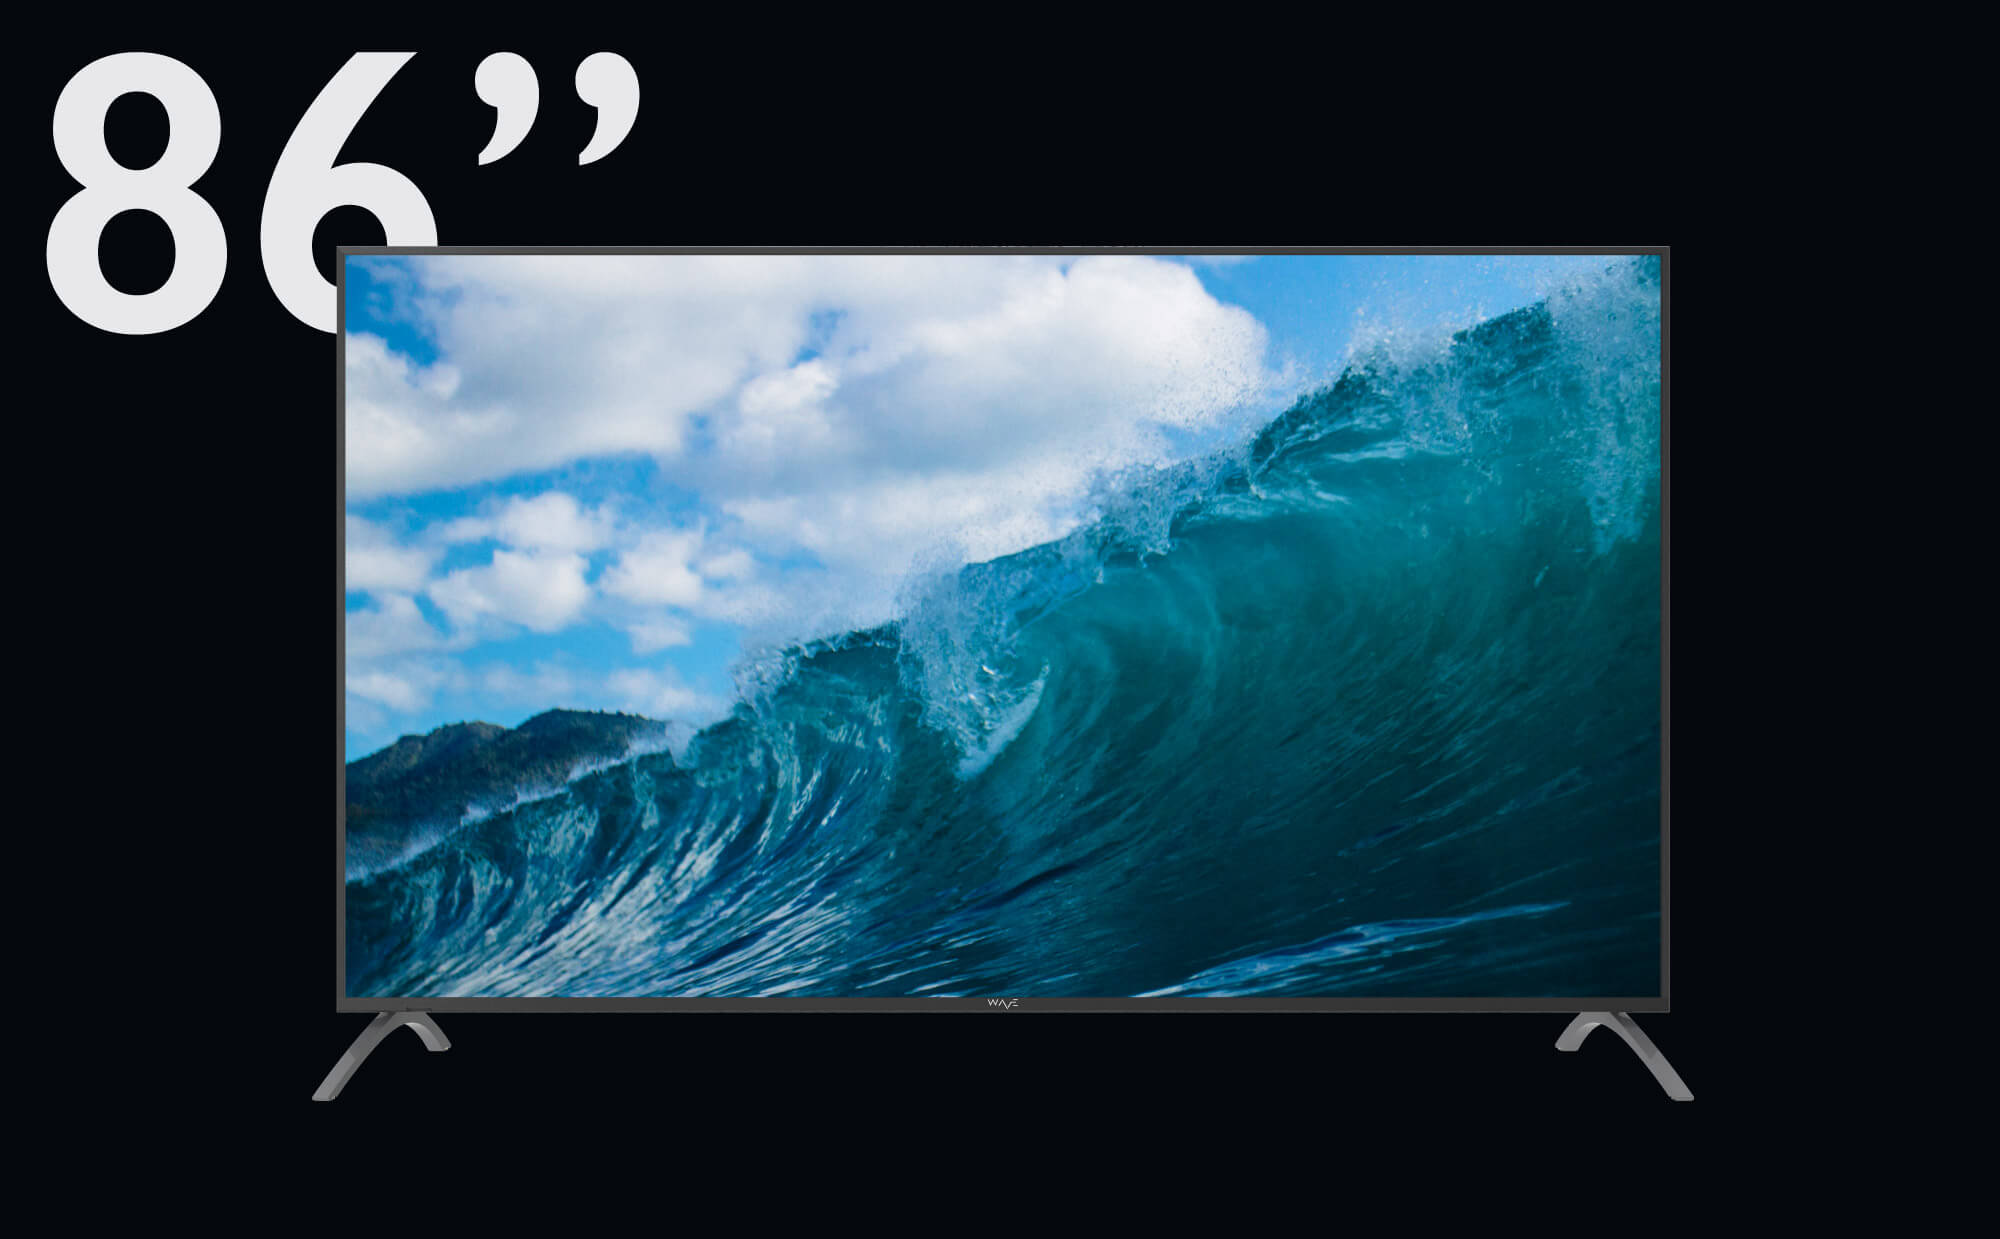 """WAVE Electronics presents 86"""" TSUNAMI with DOLBY AUDIO, super slim frame and huge 4K screen"""